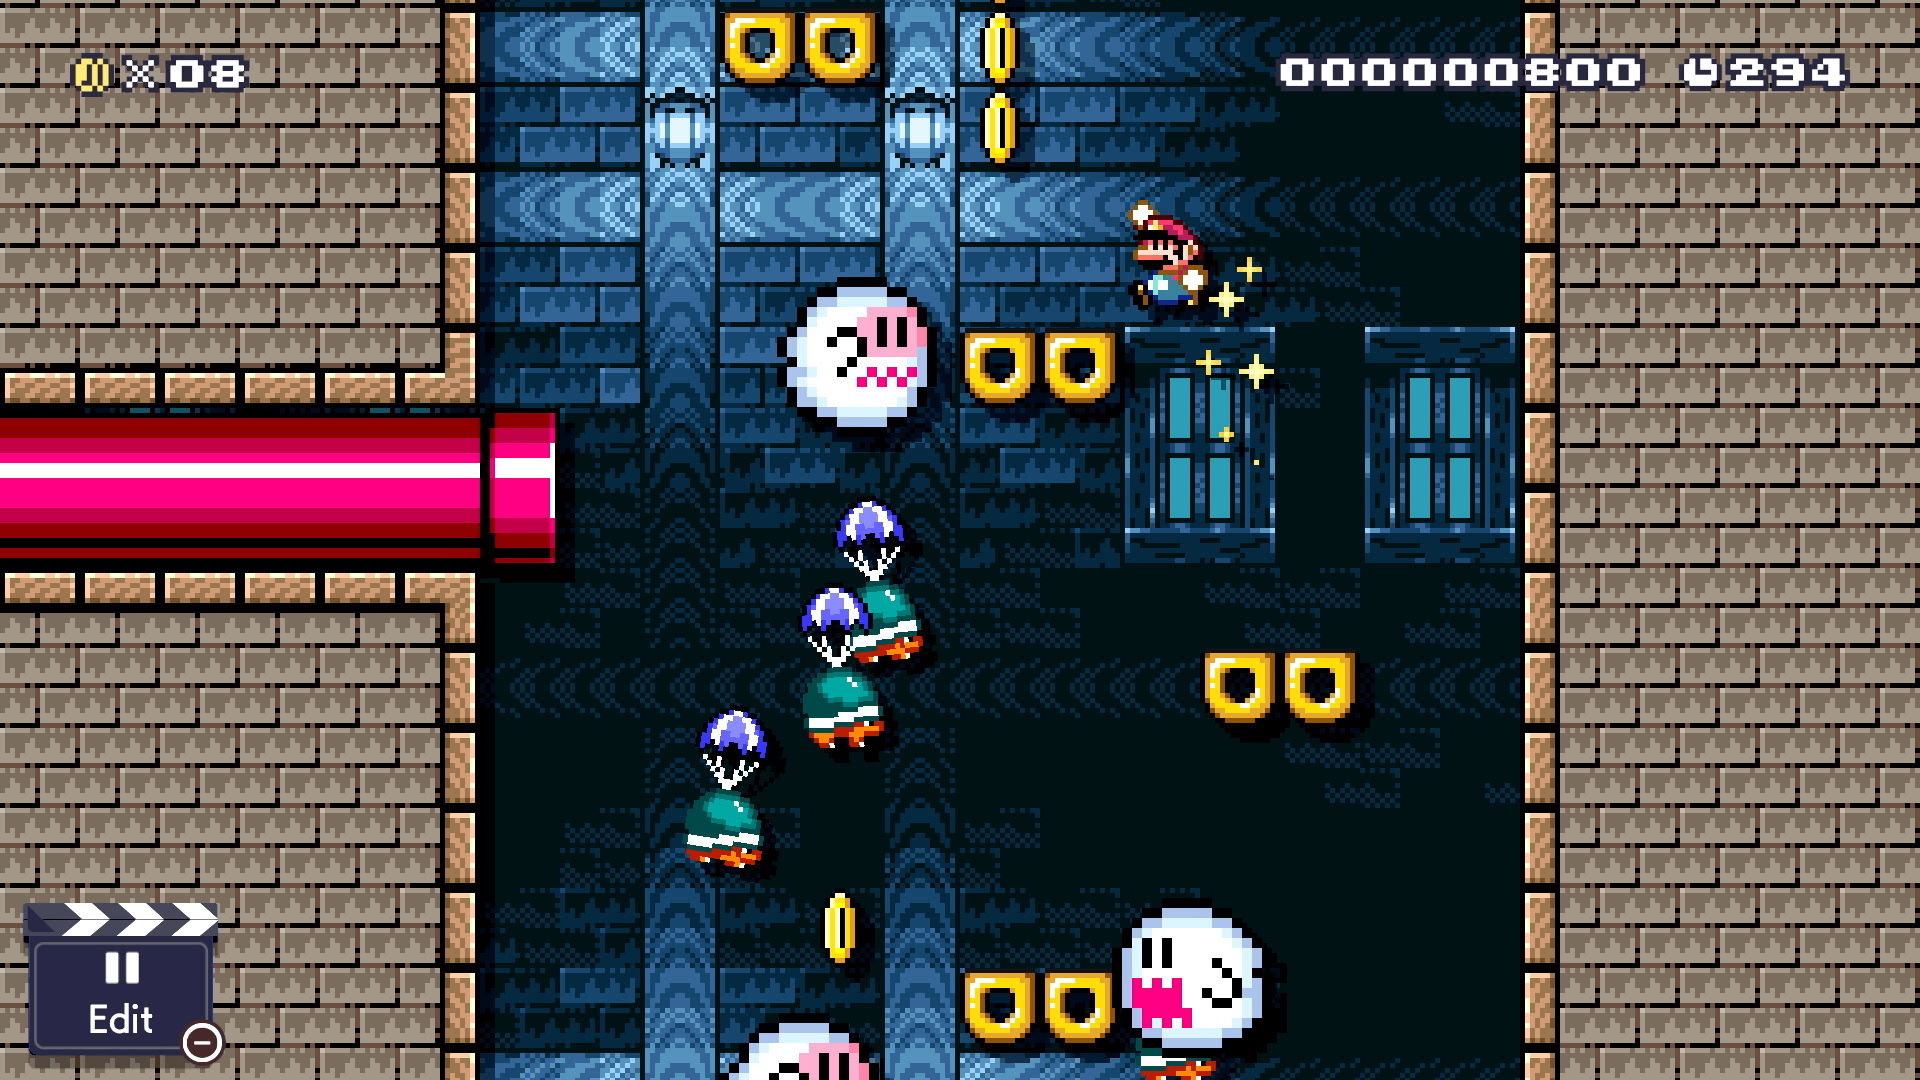 Super Mario Maker 2's debut trailer was packed with a ton of new features